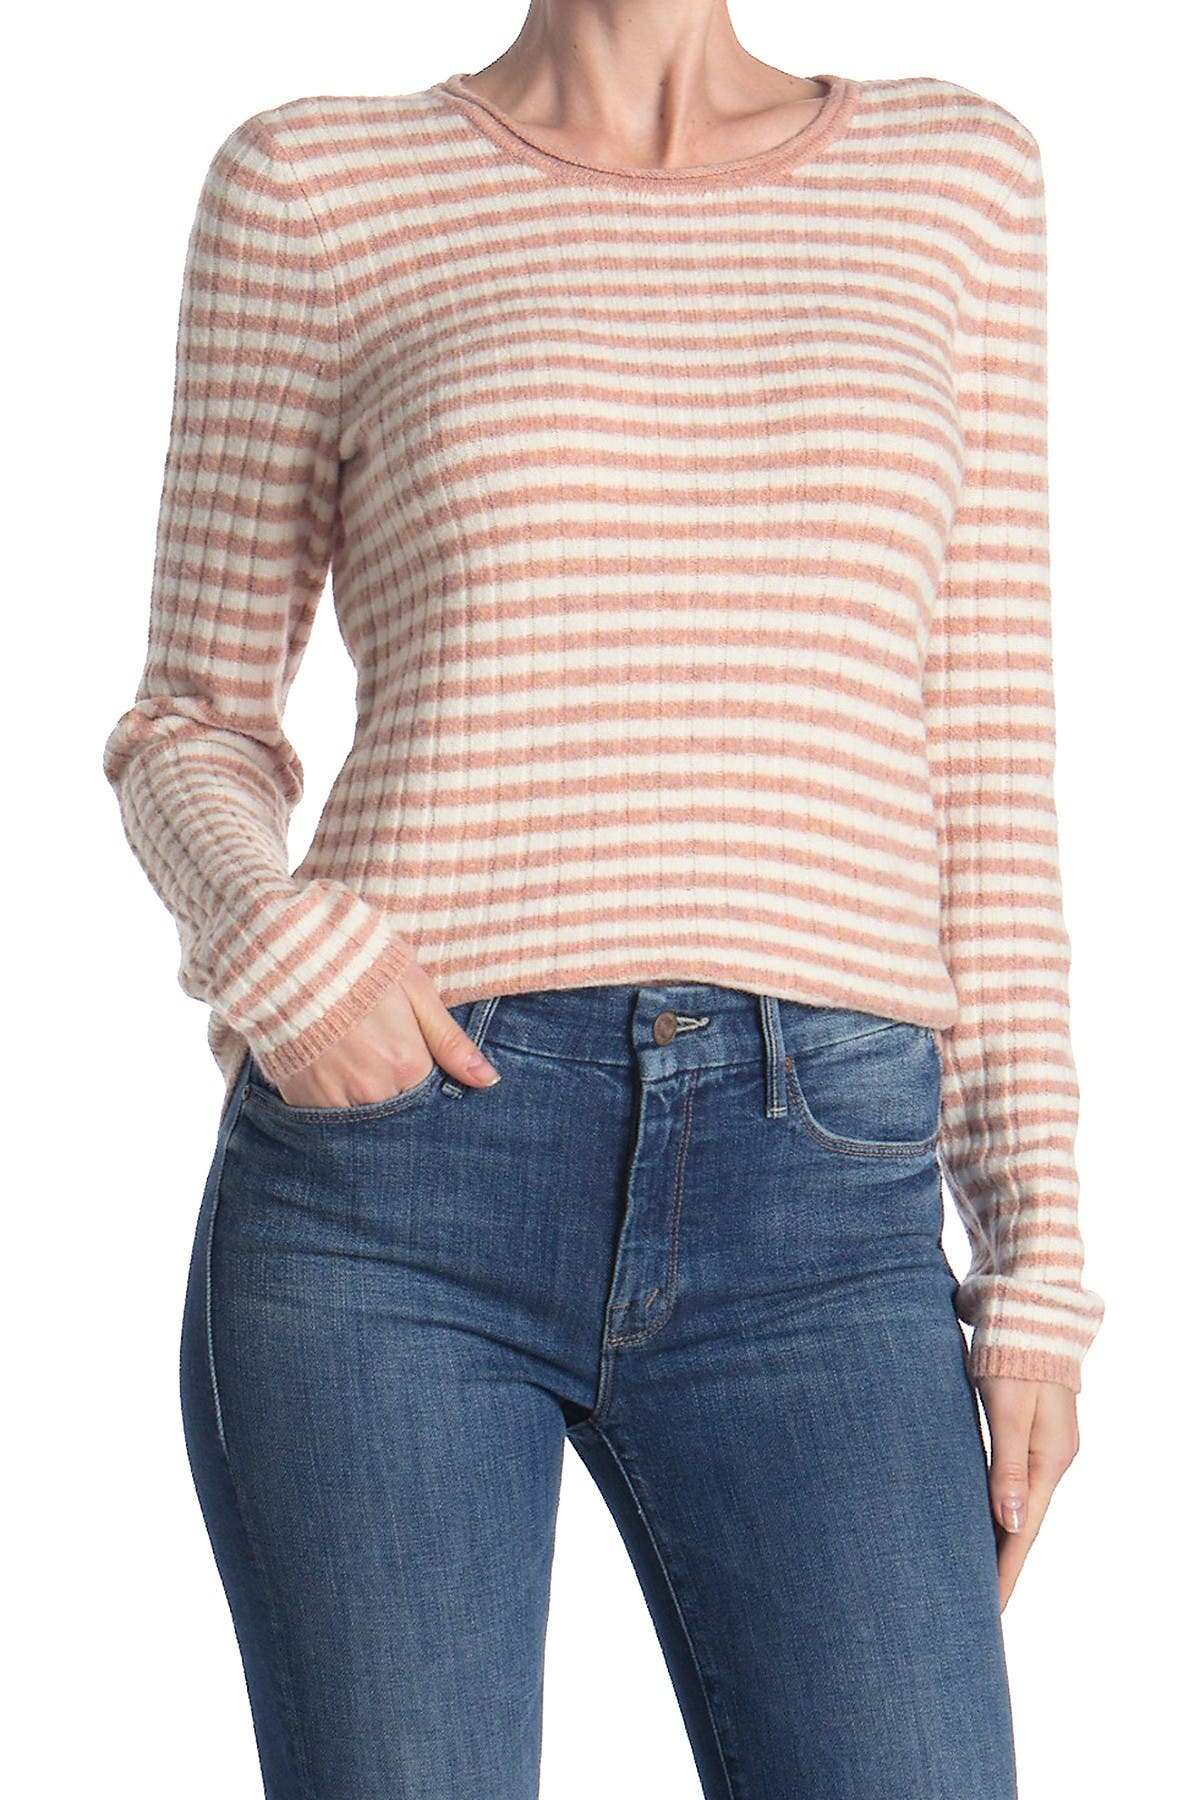 Image of Madewell Colette Striped Wool Blend Sweater